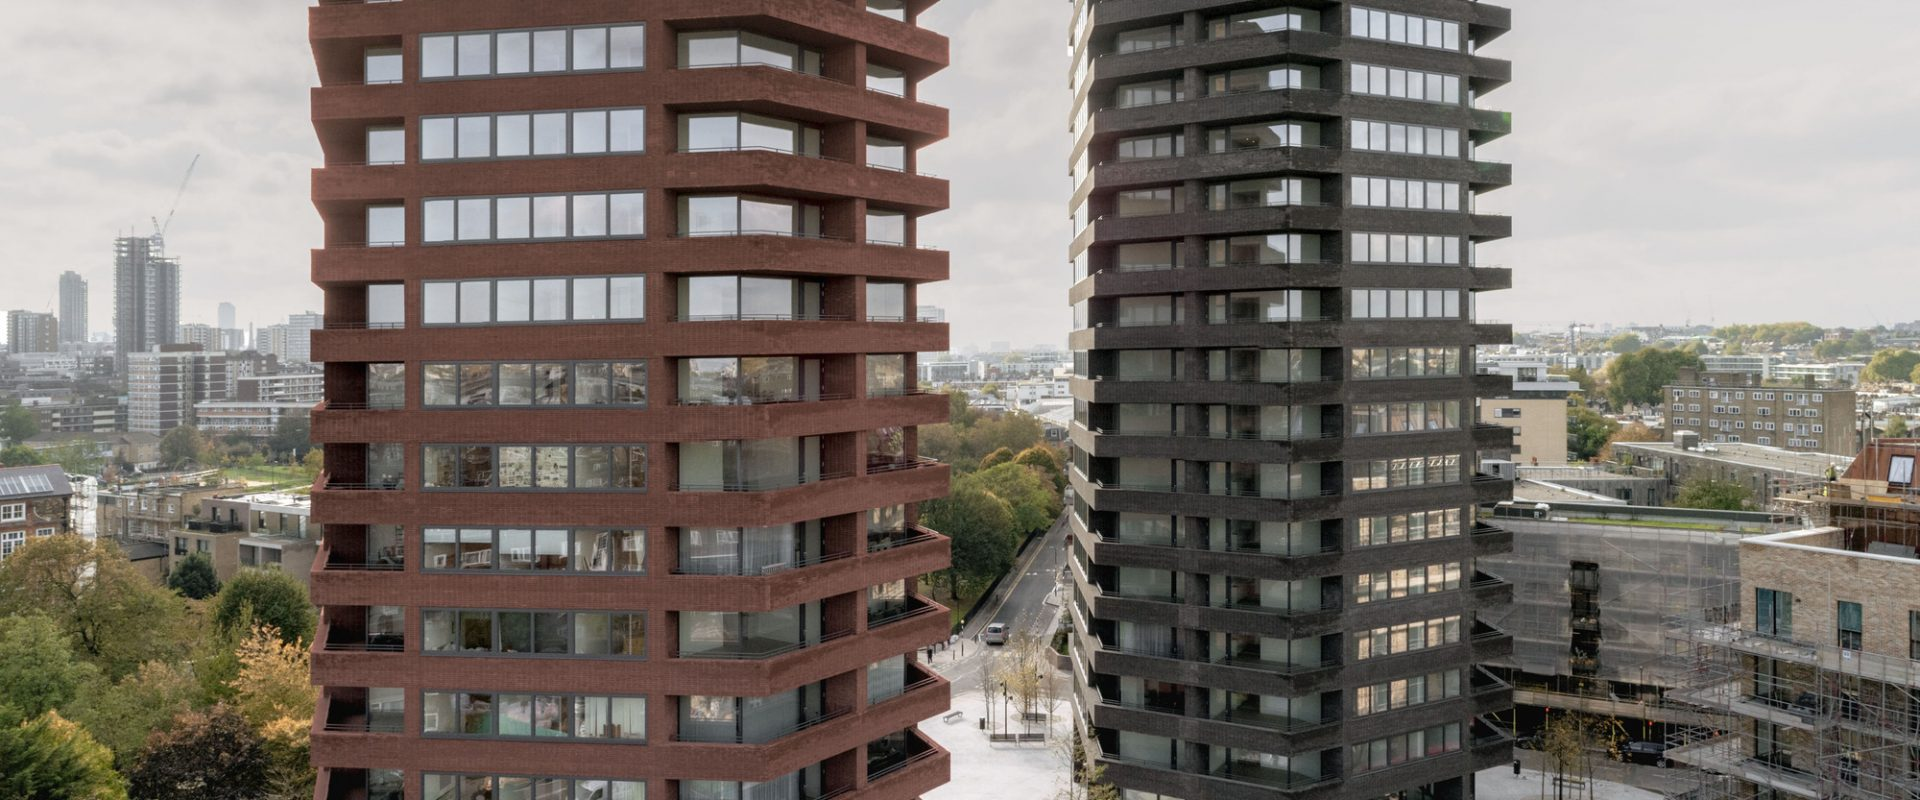 One Parkside, Hoxton 4